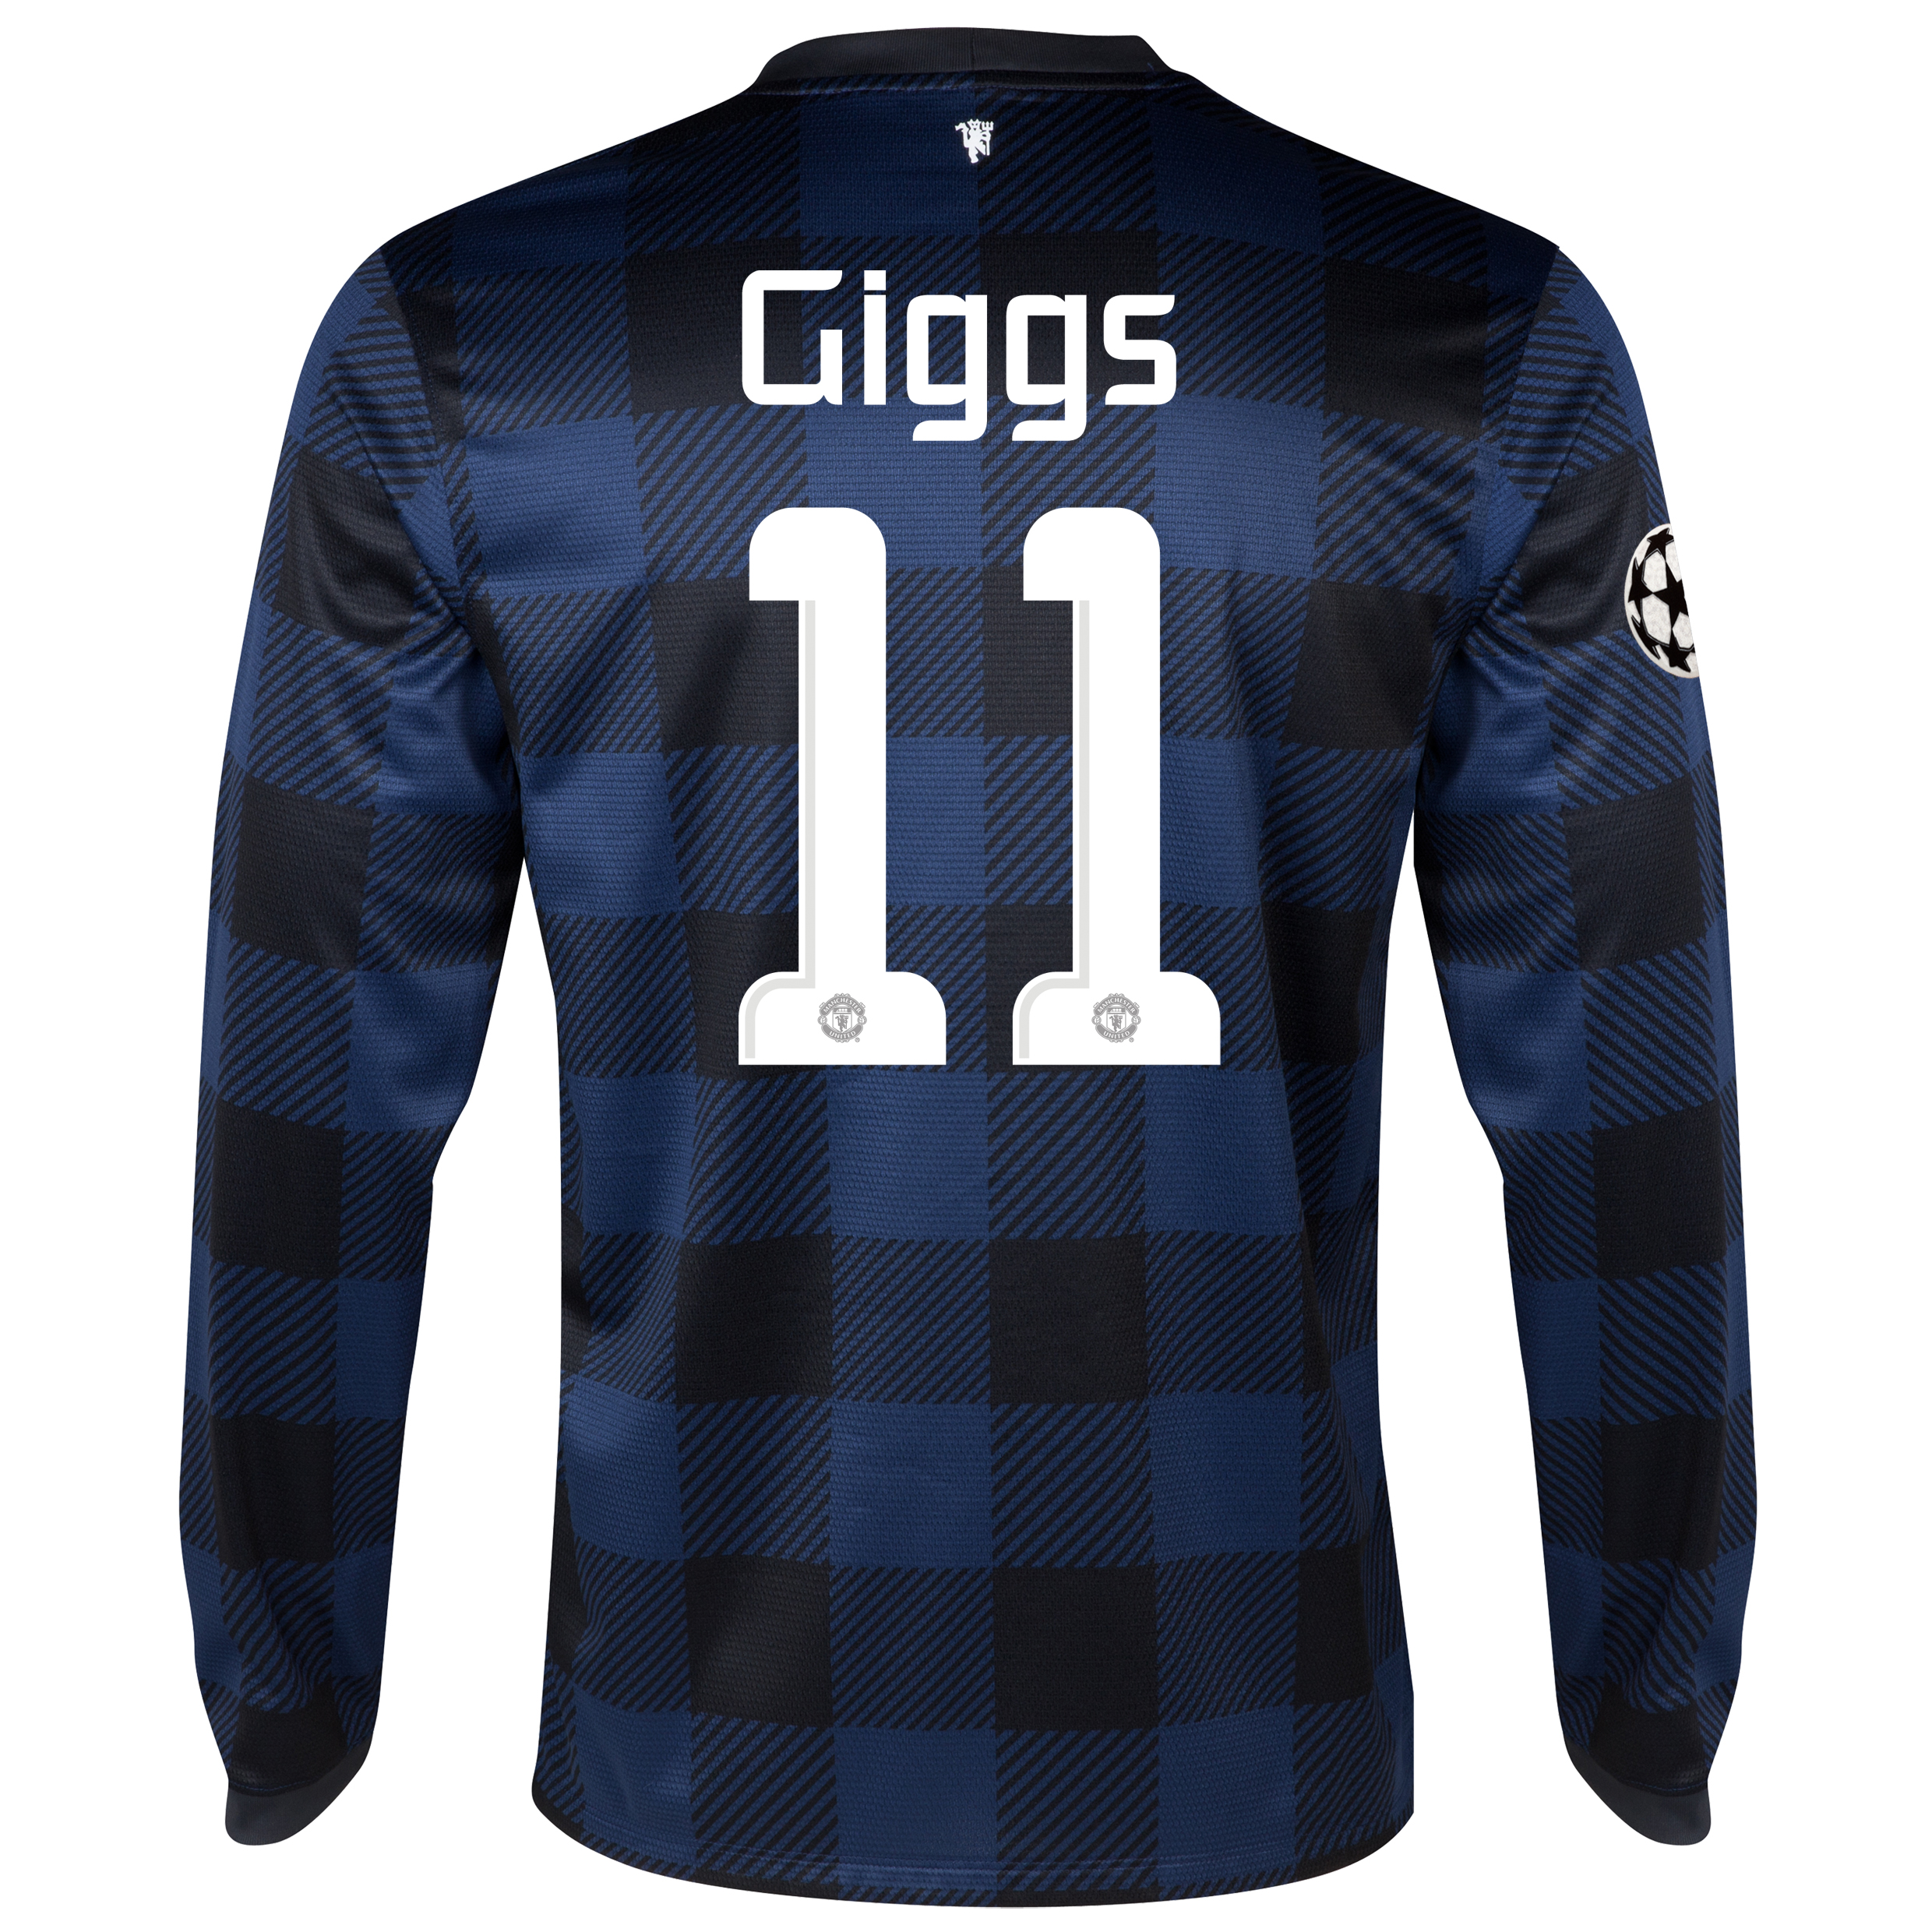 Manchester United UEFA Champions League Away Shirt 2013/14 - Long Sleeved - Kids with Giggs 11 printing